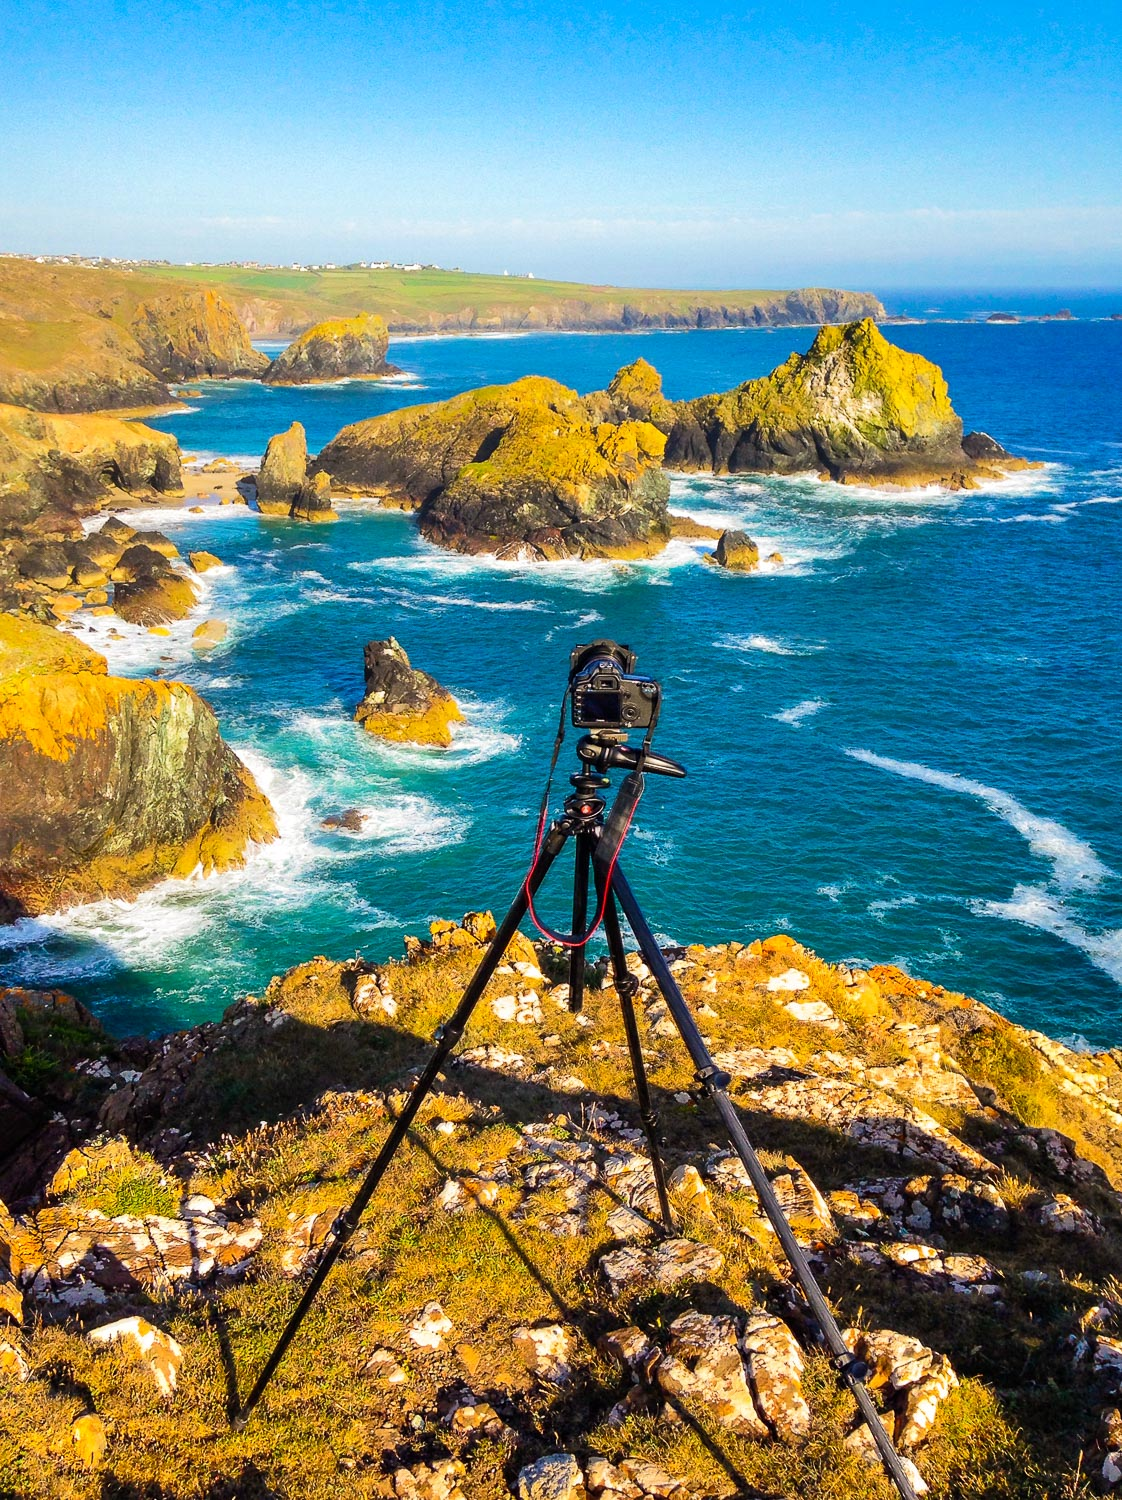 camera on a tripod overlooking a landscape scene - The First 10 Things You Need to Buy After Your Camera for Travel Photography